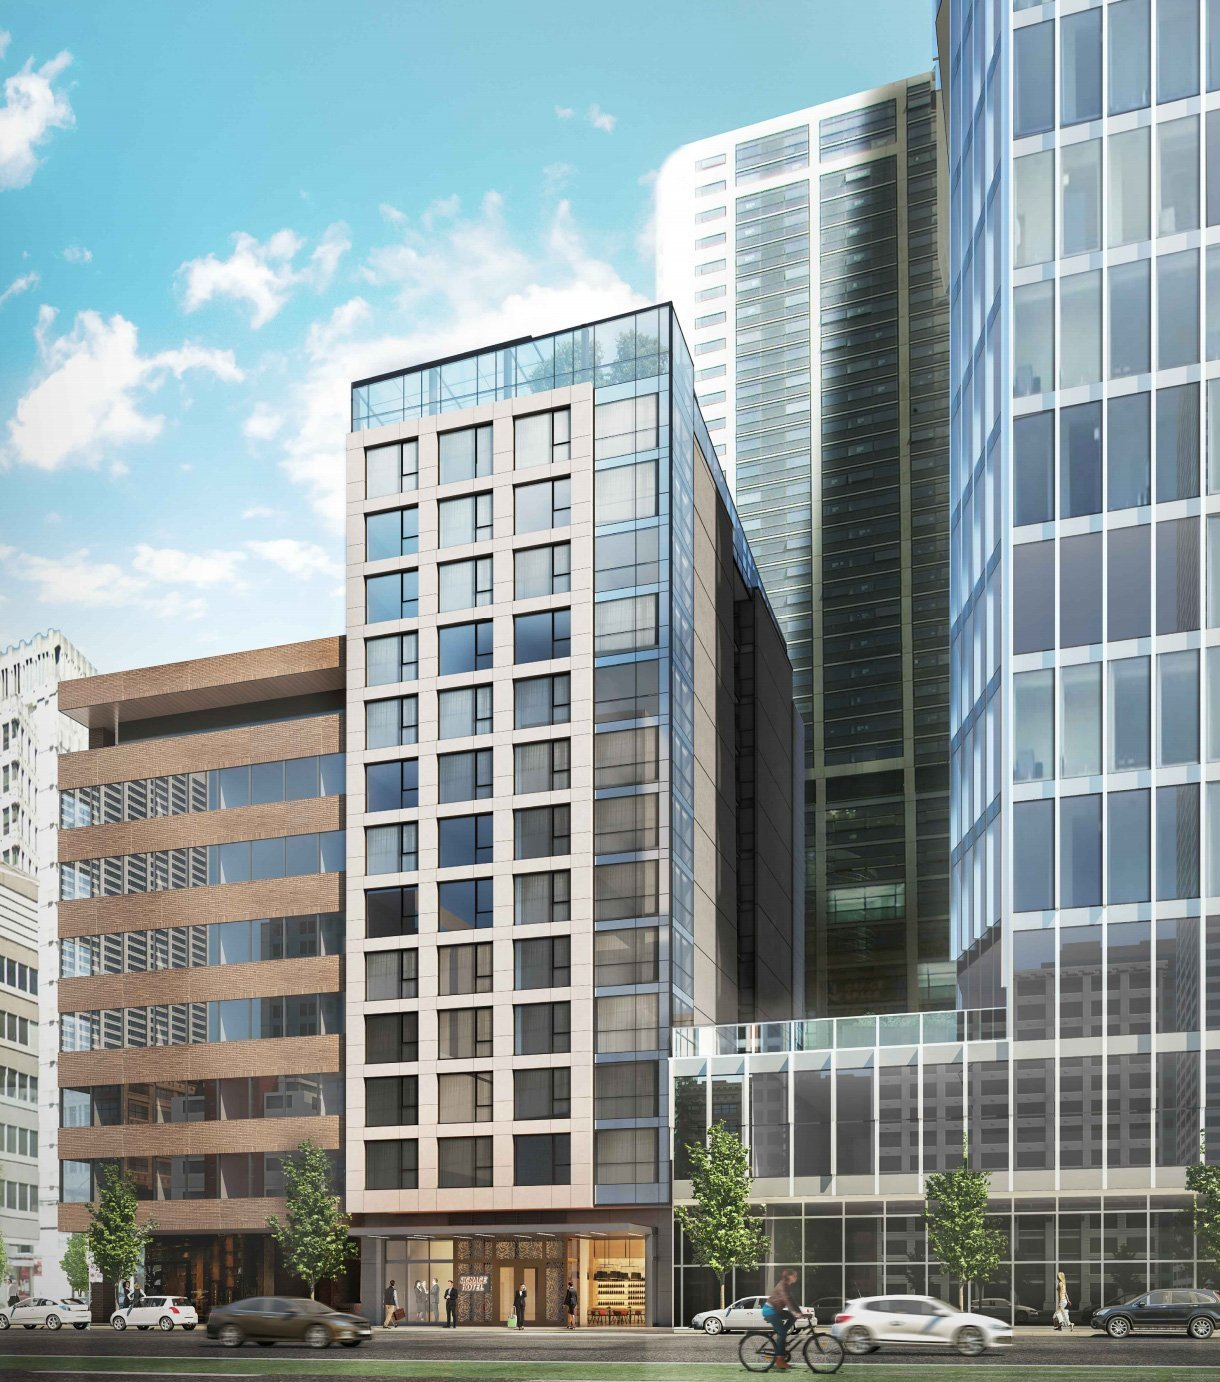 833 West Pender Executive Hotel building rendering